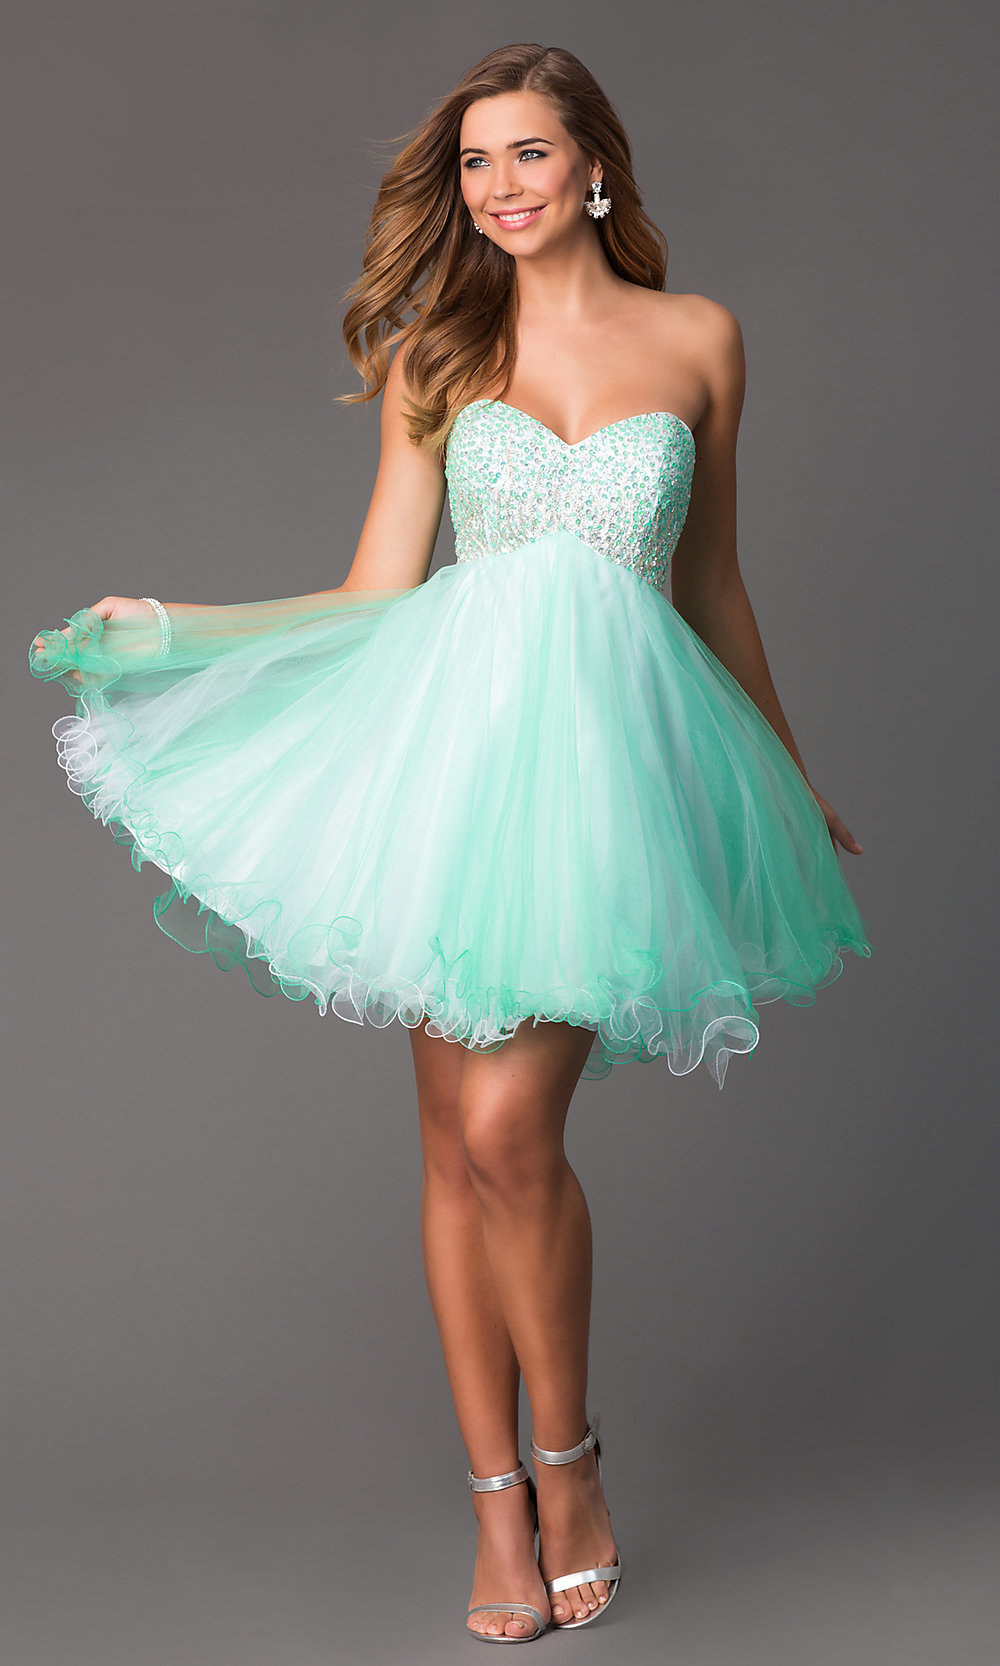 Short Strapless Empire Waist Dress, Strapless Prom Dress